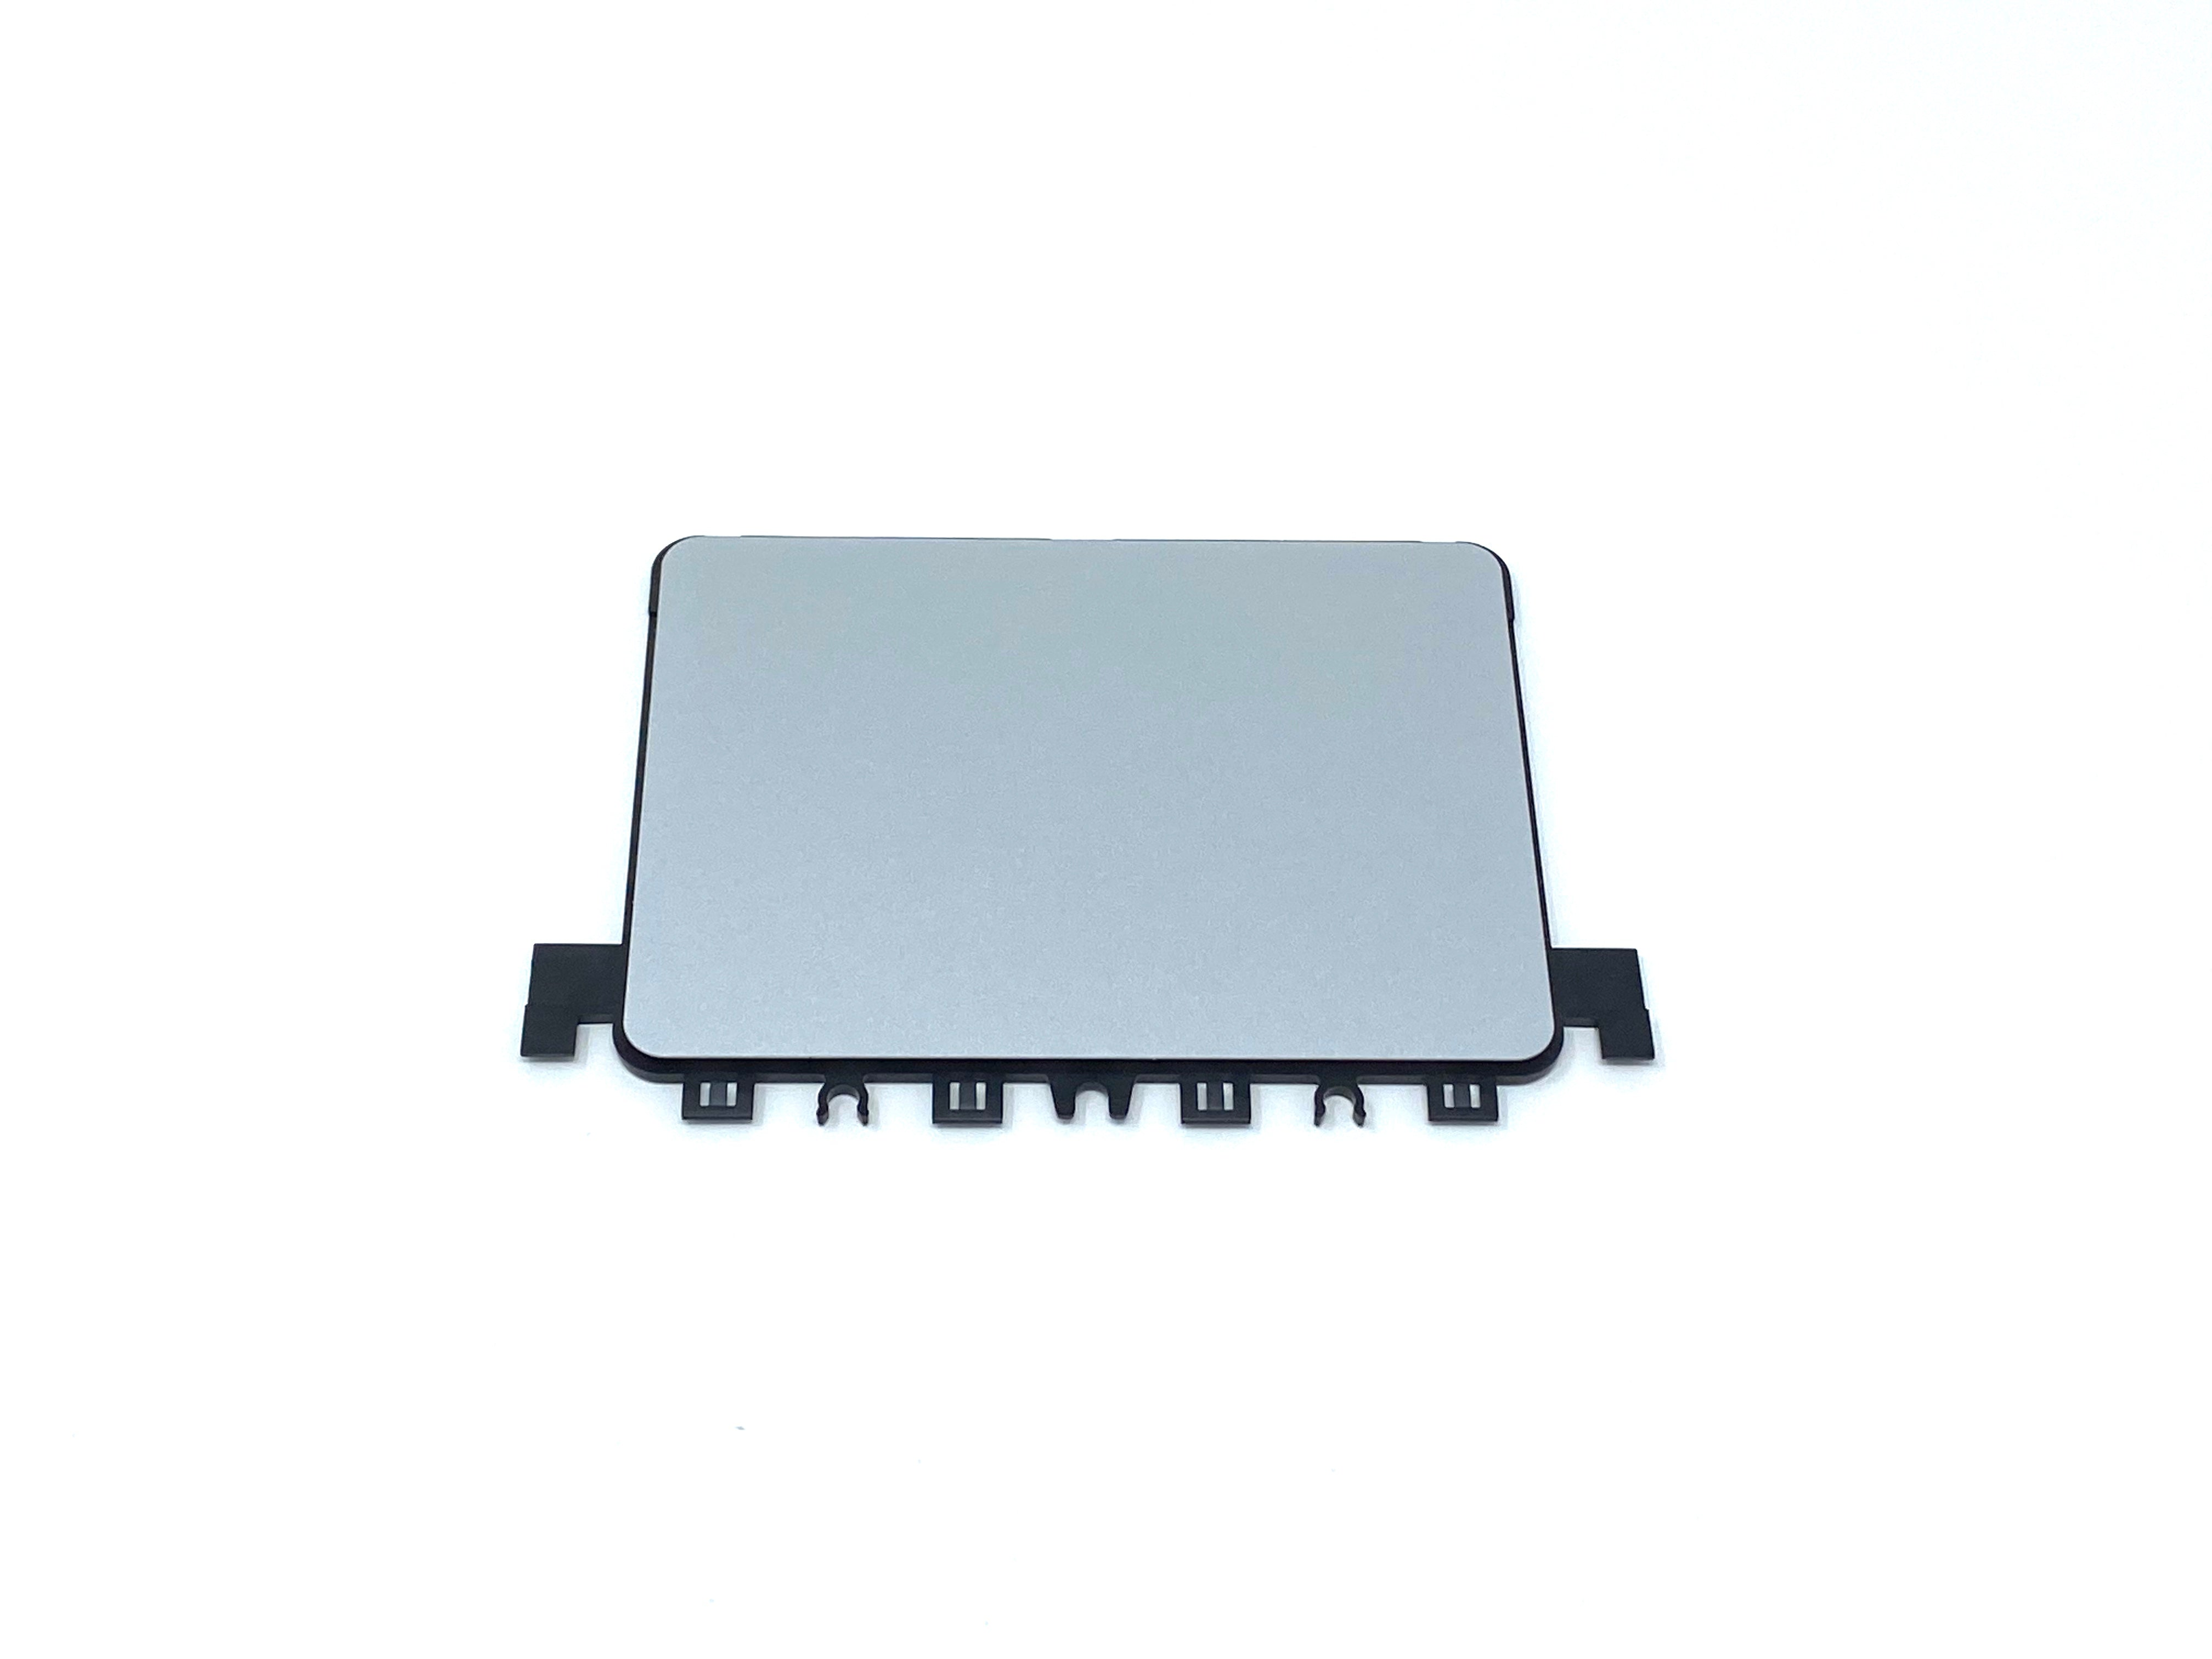 Acer Aspire 5 A515-43 Touchpad (Silver) - 56.HKMN2.001 / 56.HKMN2.002